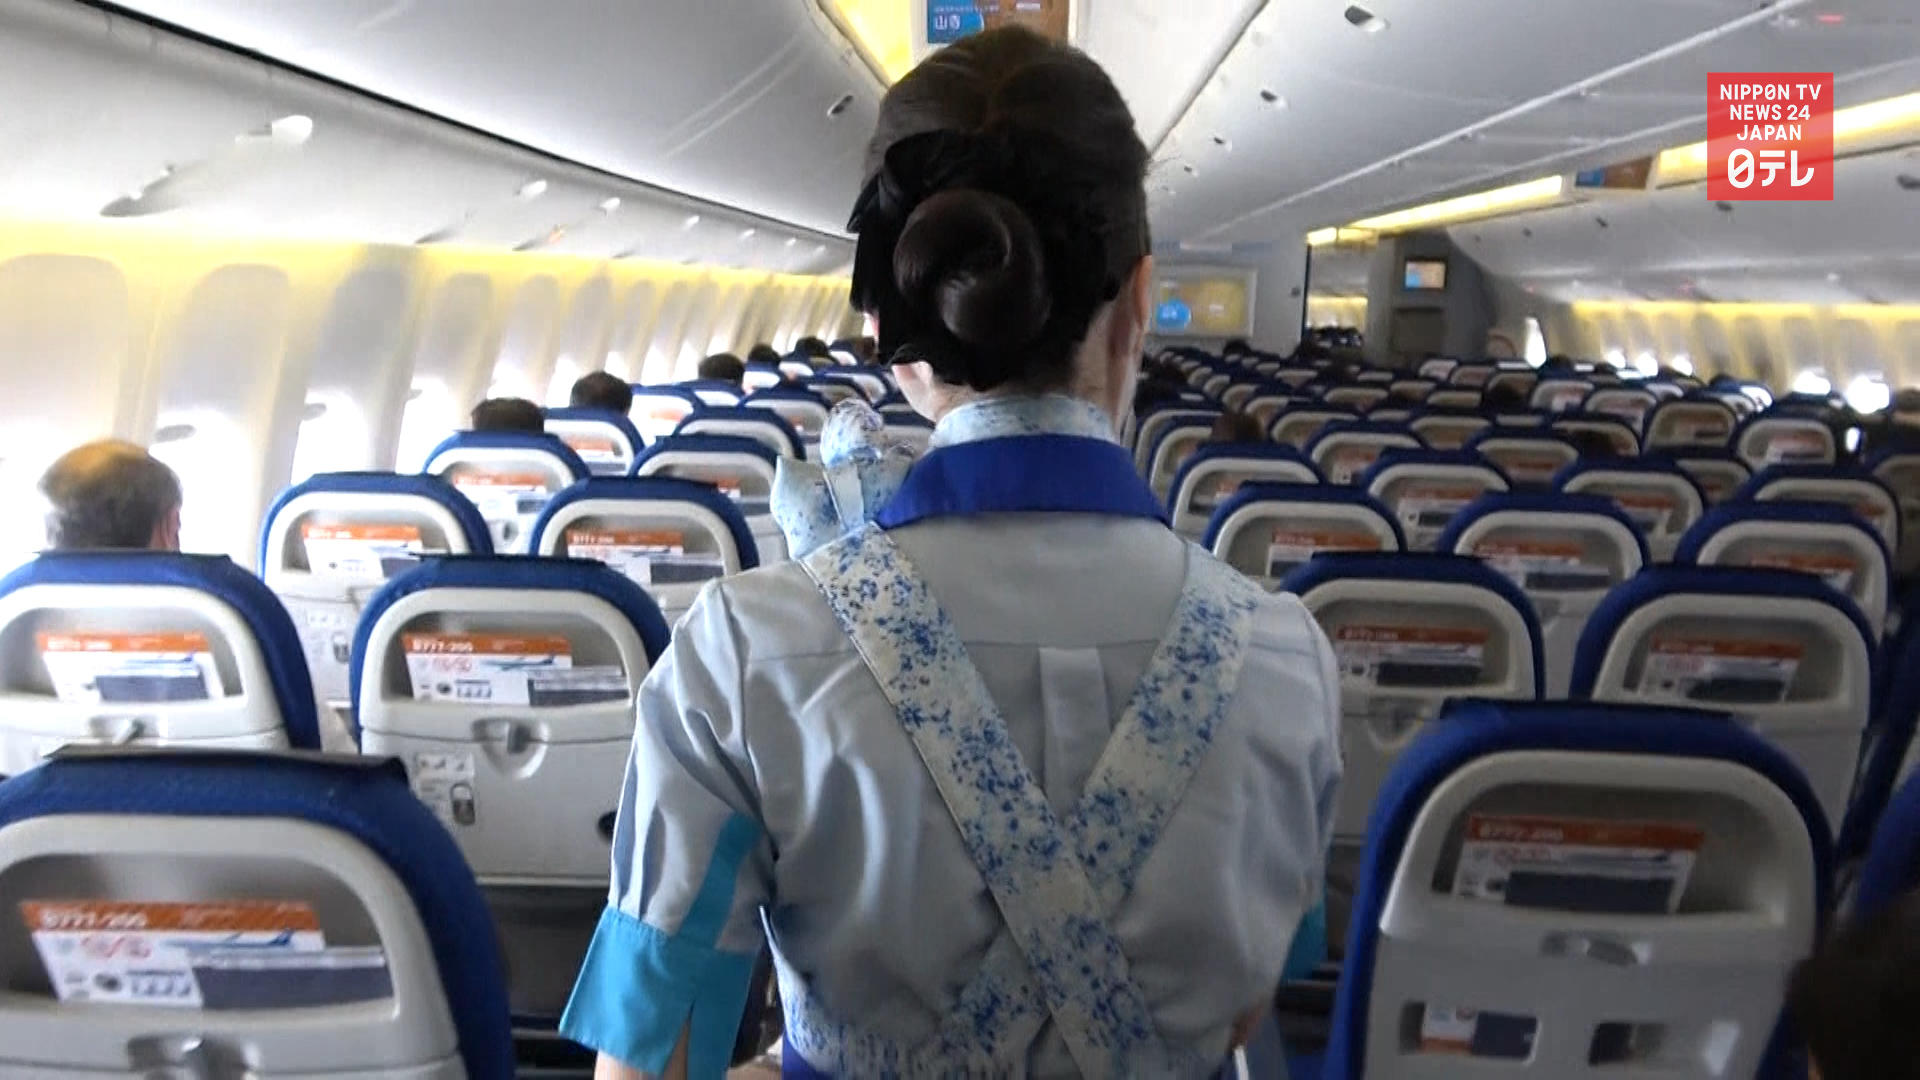 ANA now requires passengers to wear masks